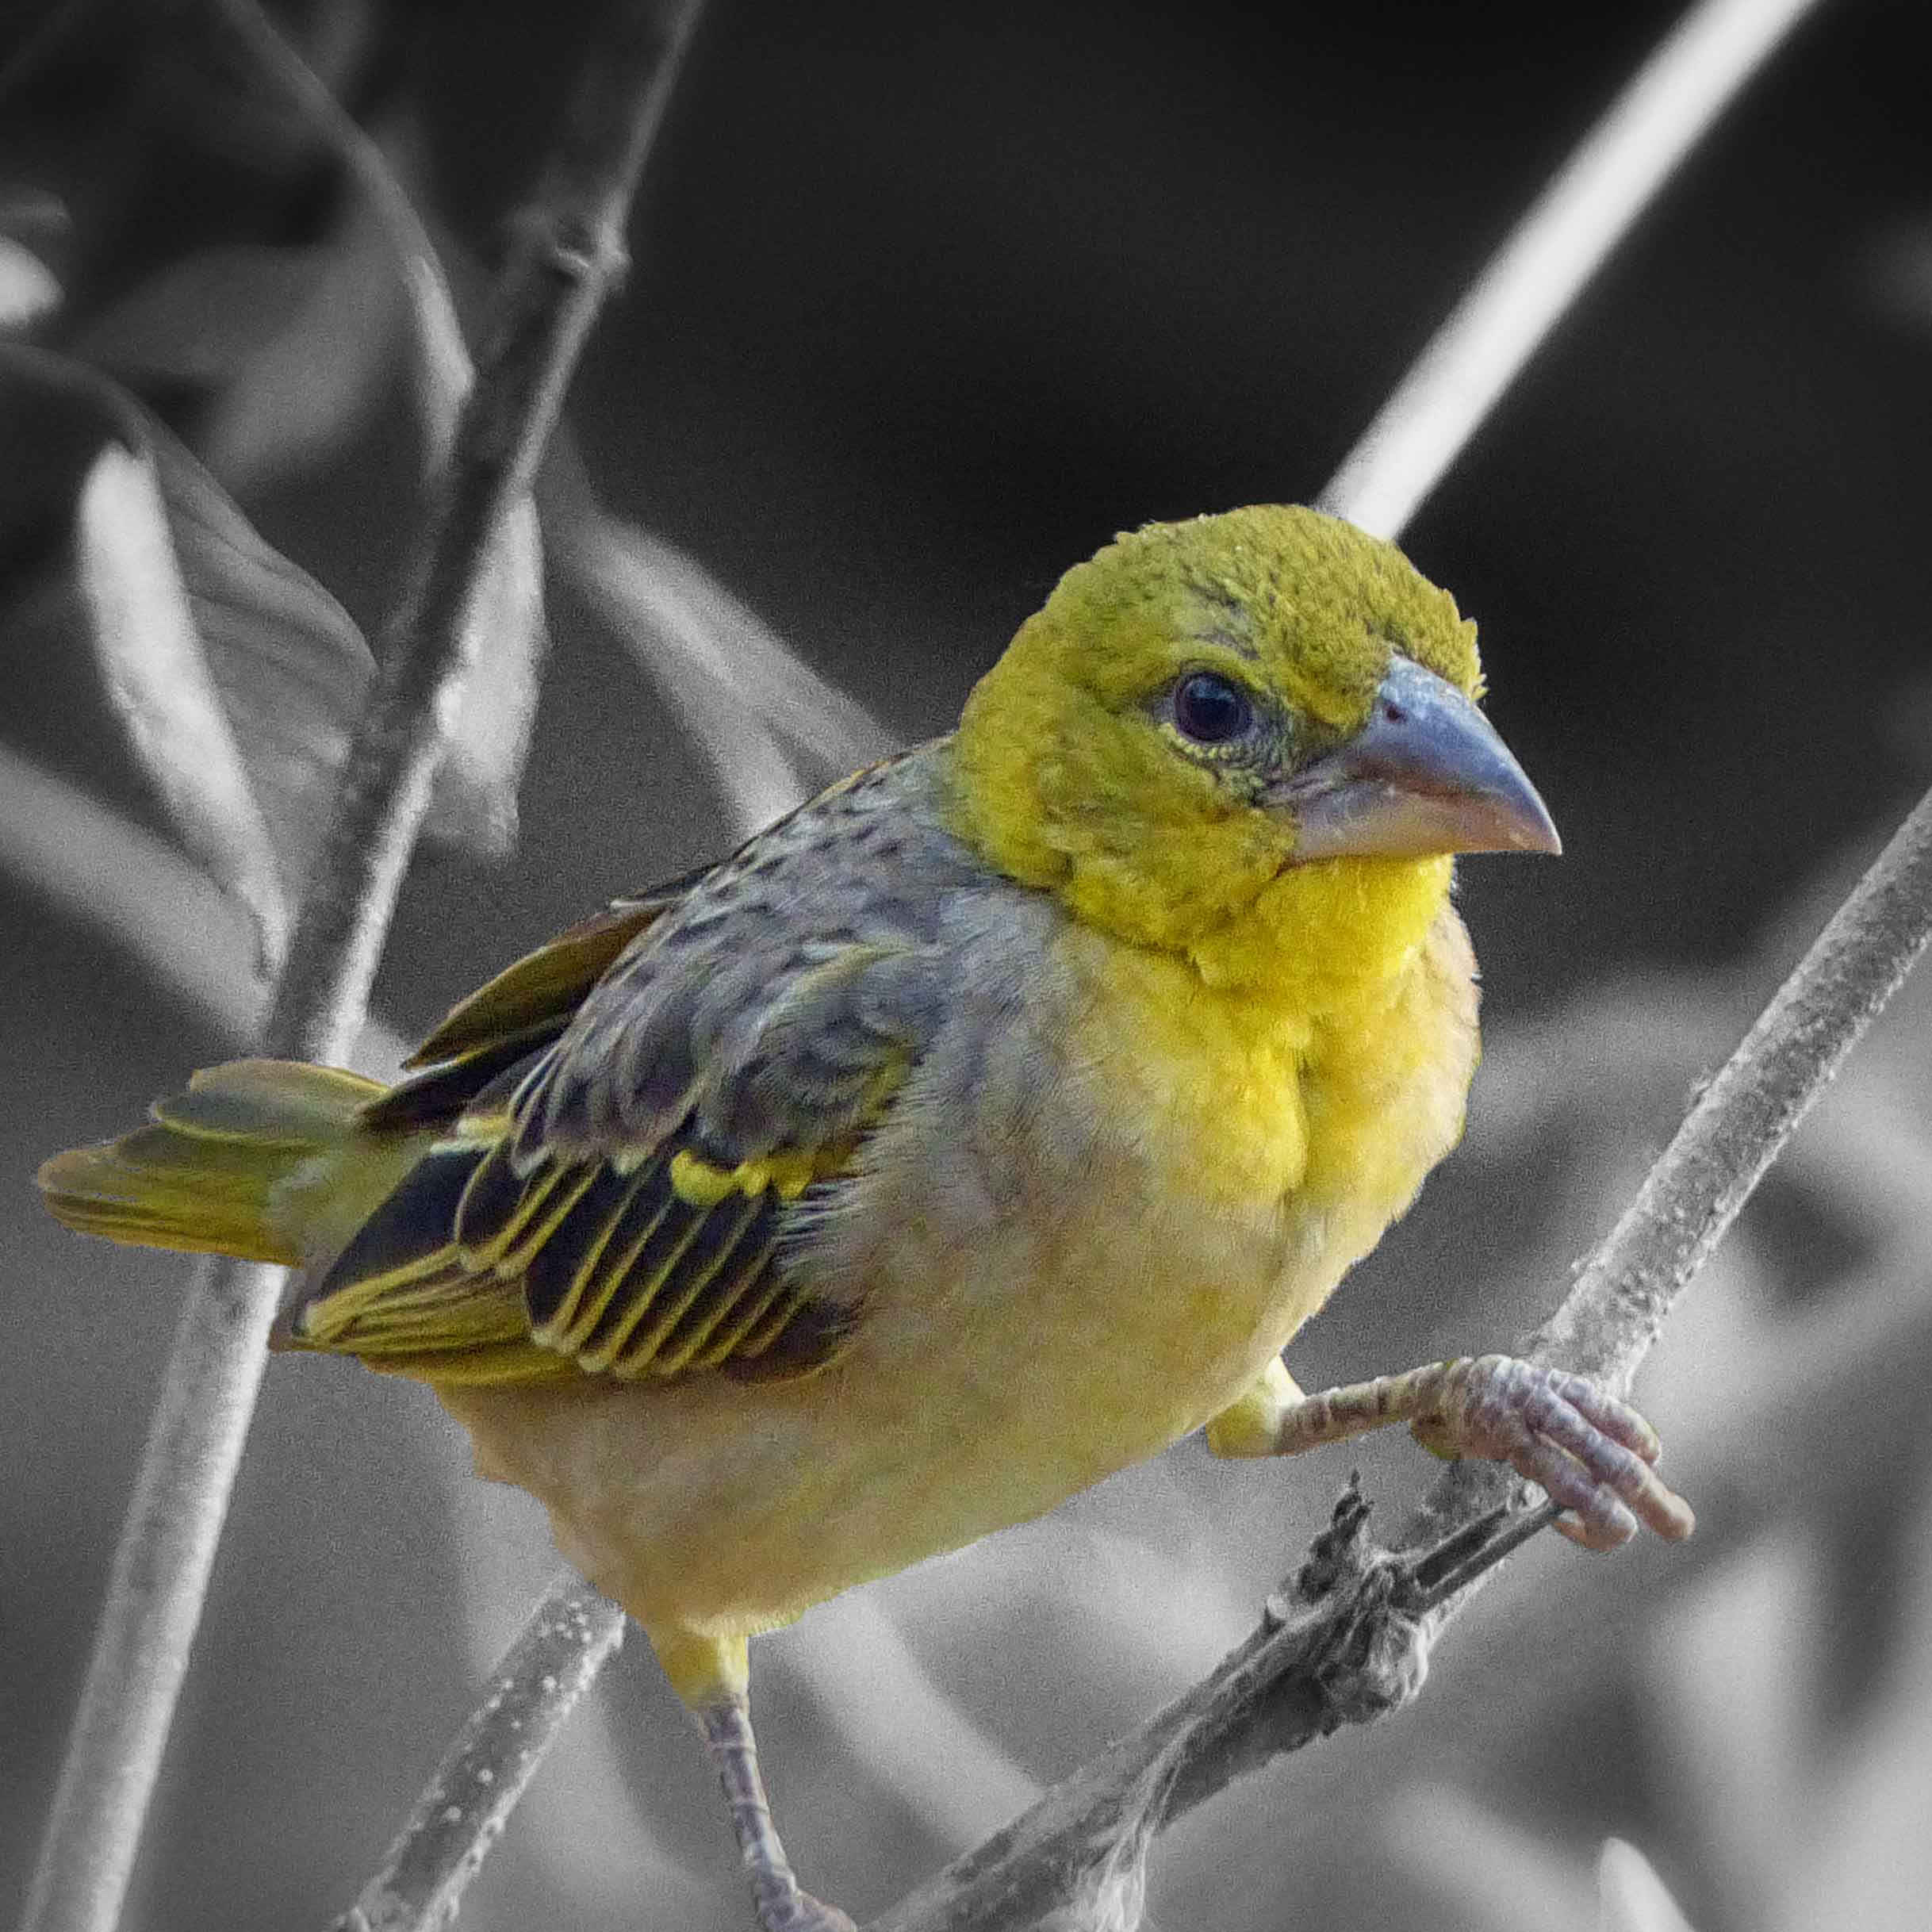 Small yellow bird in a bus, black and white backgroundh